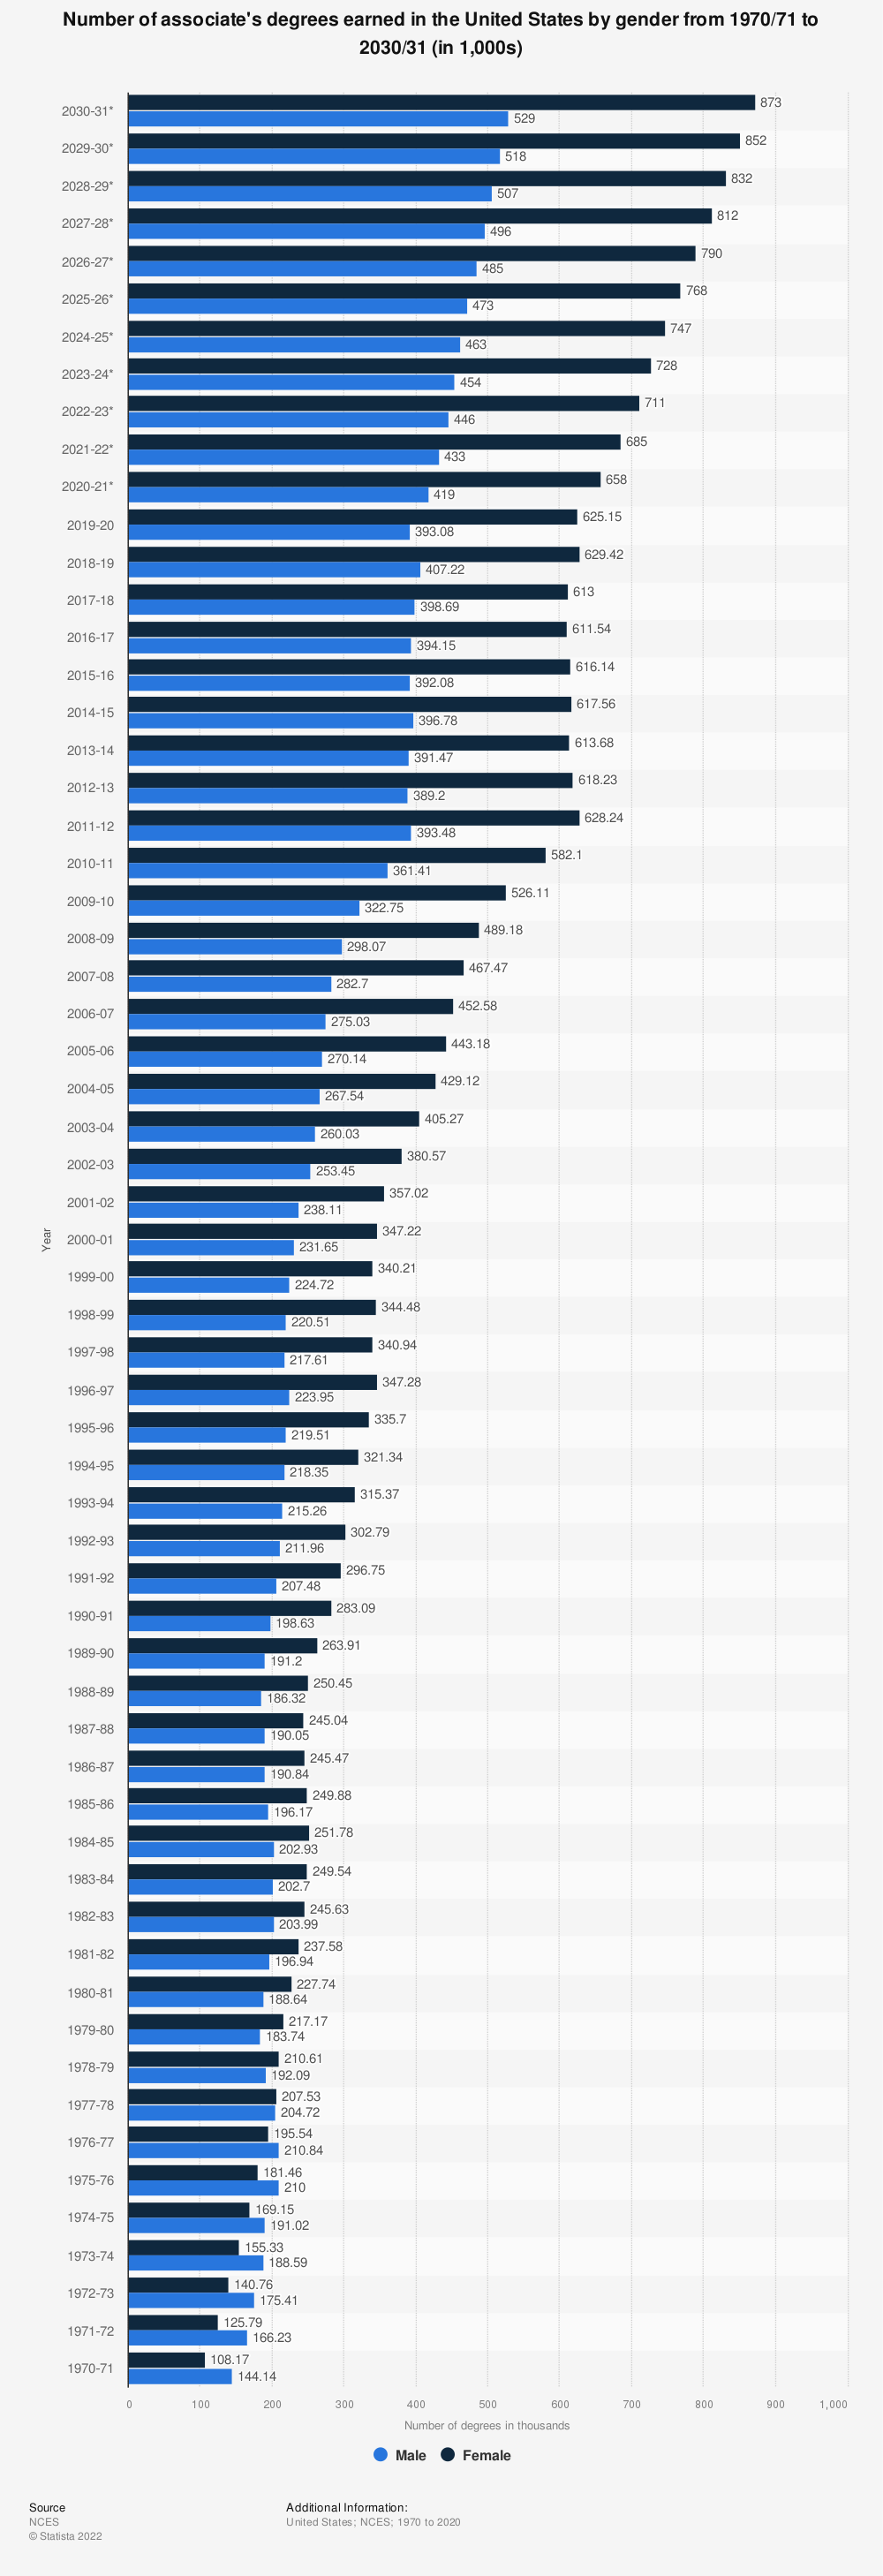 Statistic: Number of associate's degrees earned in the United States by gender from 1970/71 to 2026/27 (in 1,000) | Statista